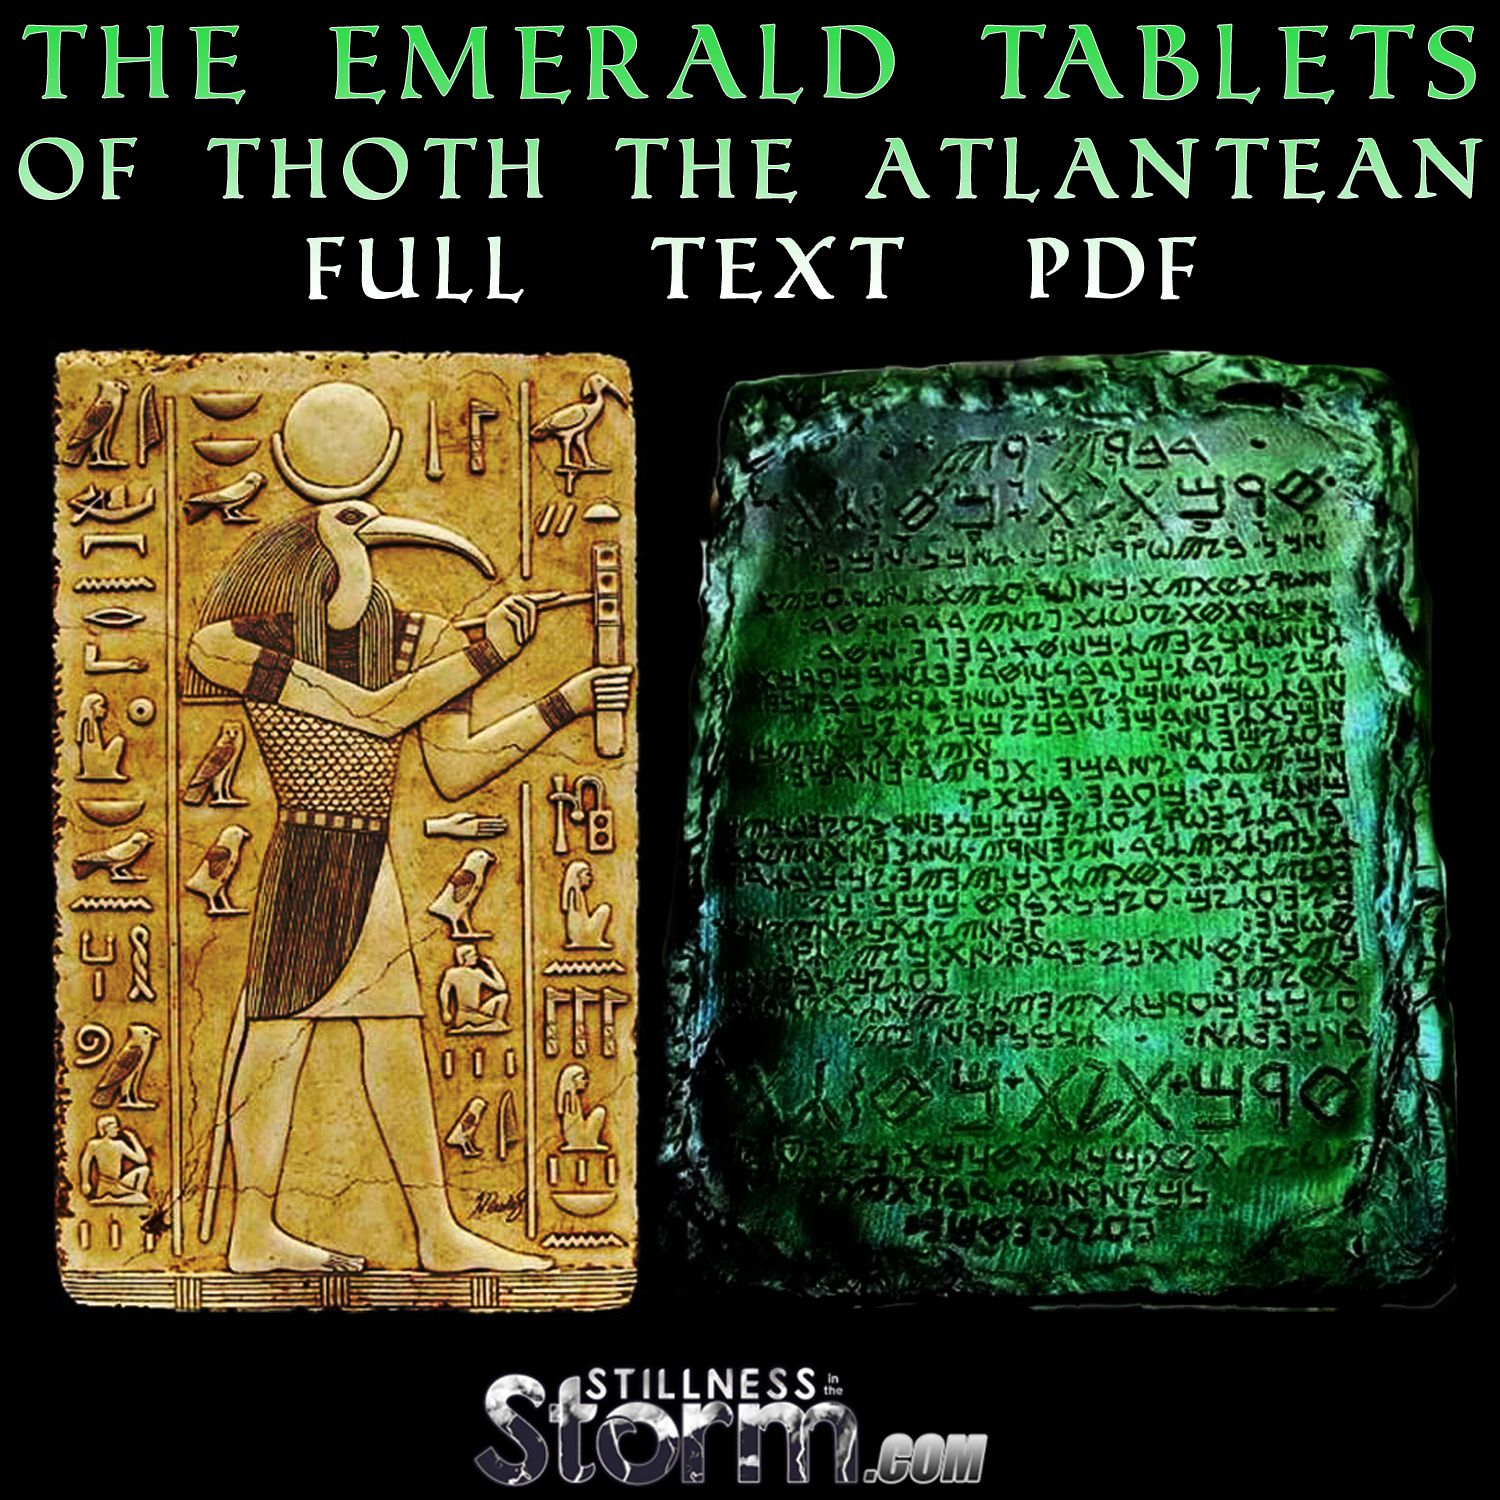 Stillness in the Storm : The Emerald Tablets of Thoth the Atlantean